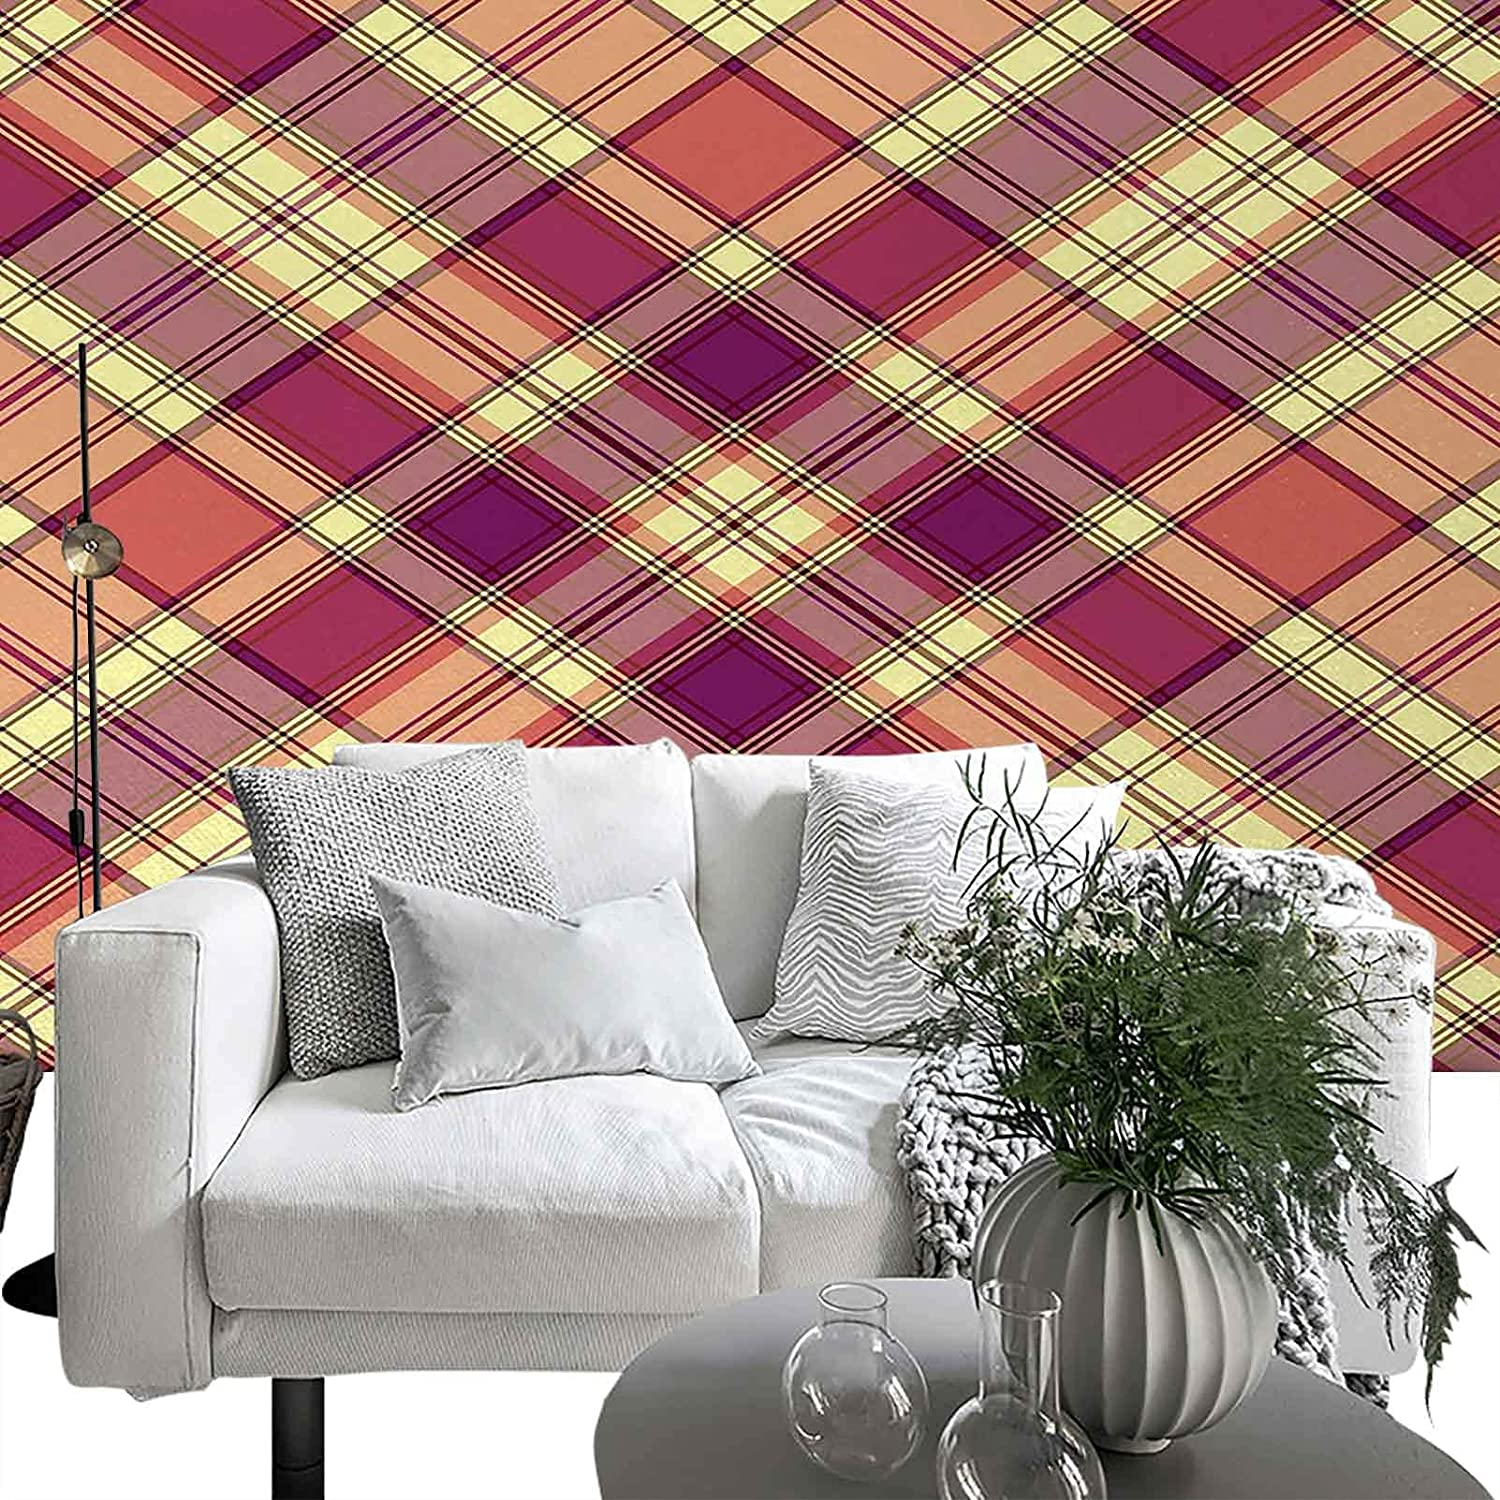 Japan's largest assortment List price Wall Sticker for Bedroom Living Room Style Checkered Displ Retro